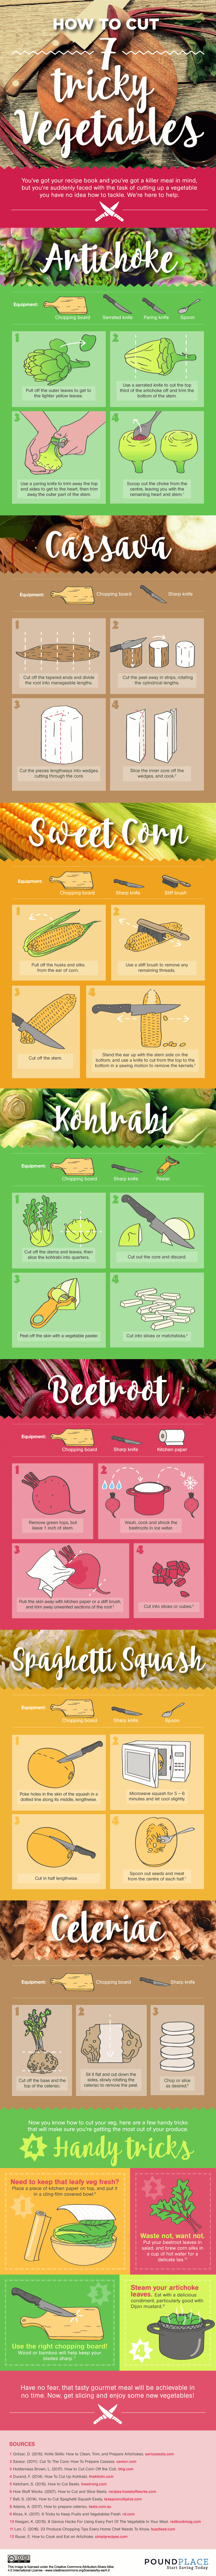 How-to-cut-7-tricky-vegetables